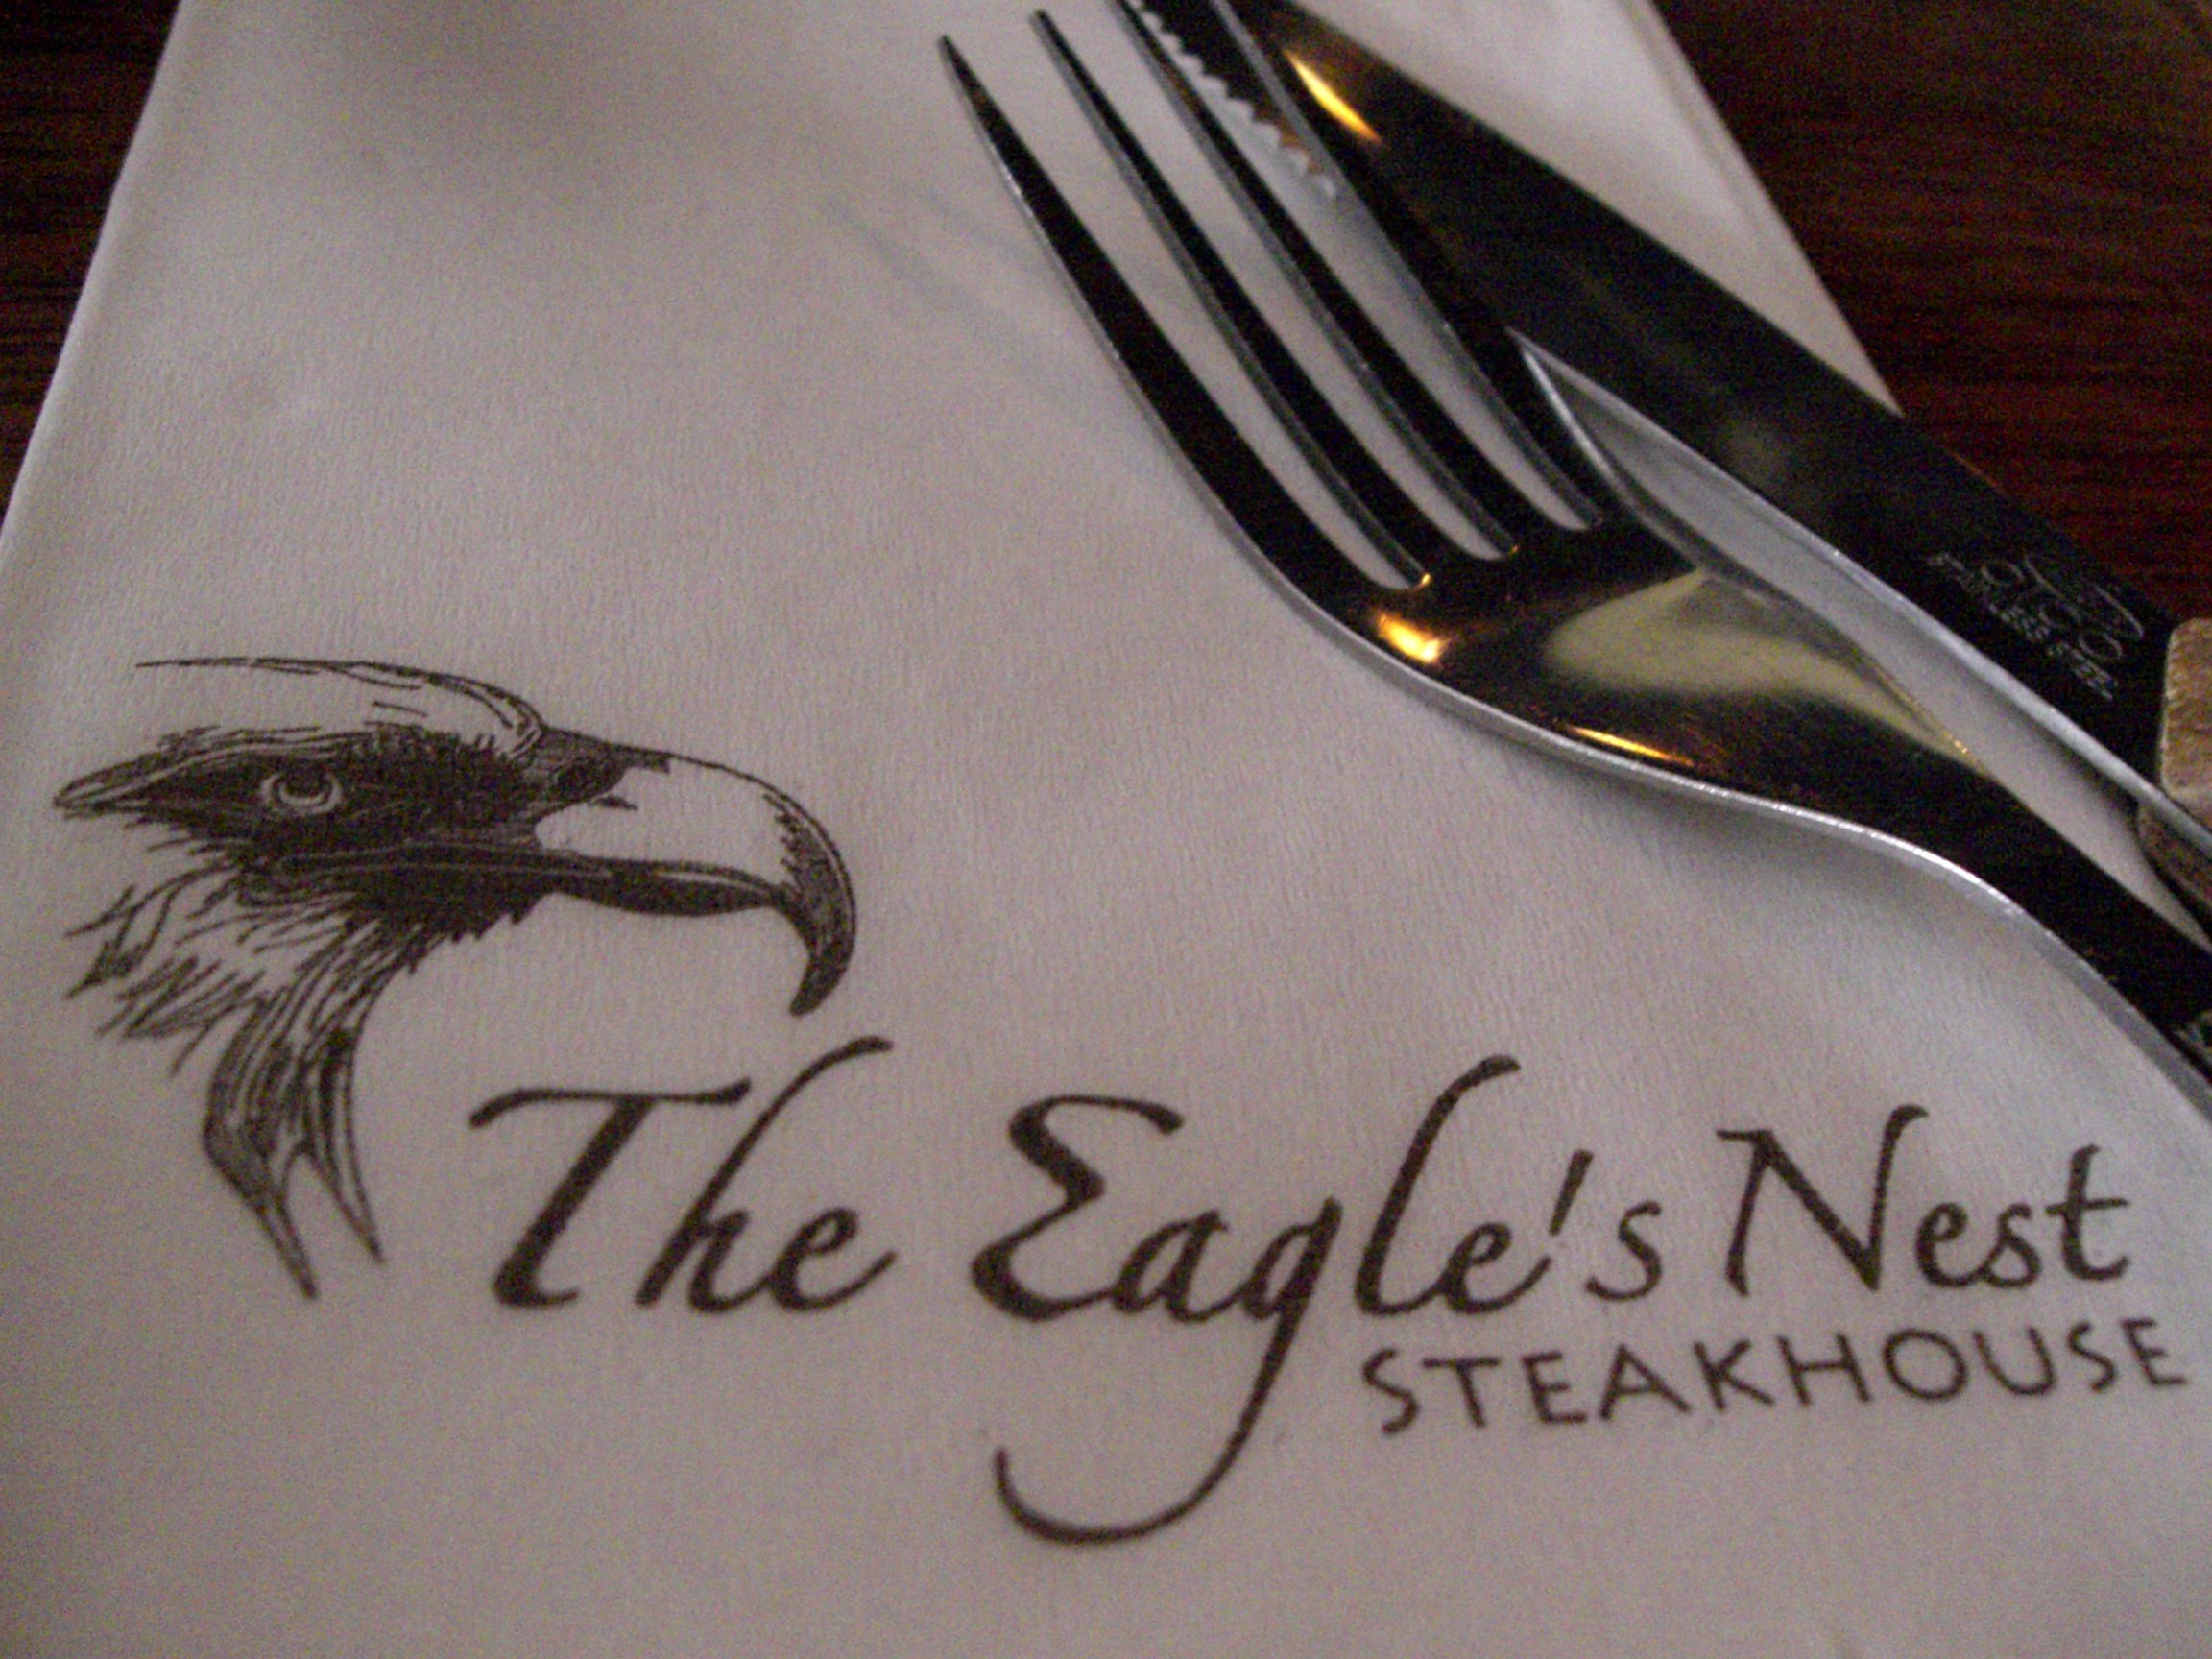 Eagle's Nest Steakhouse